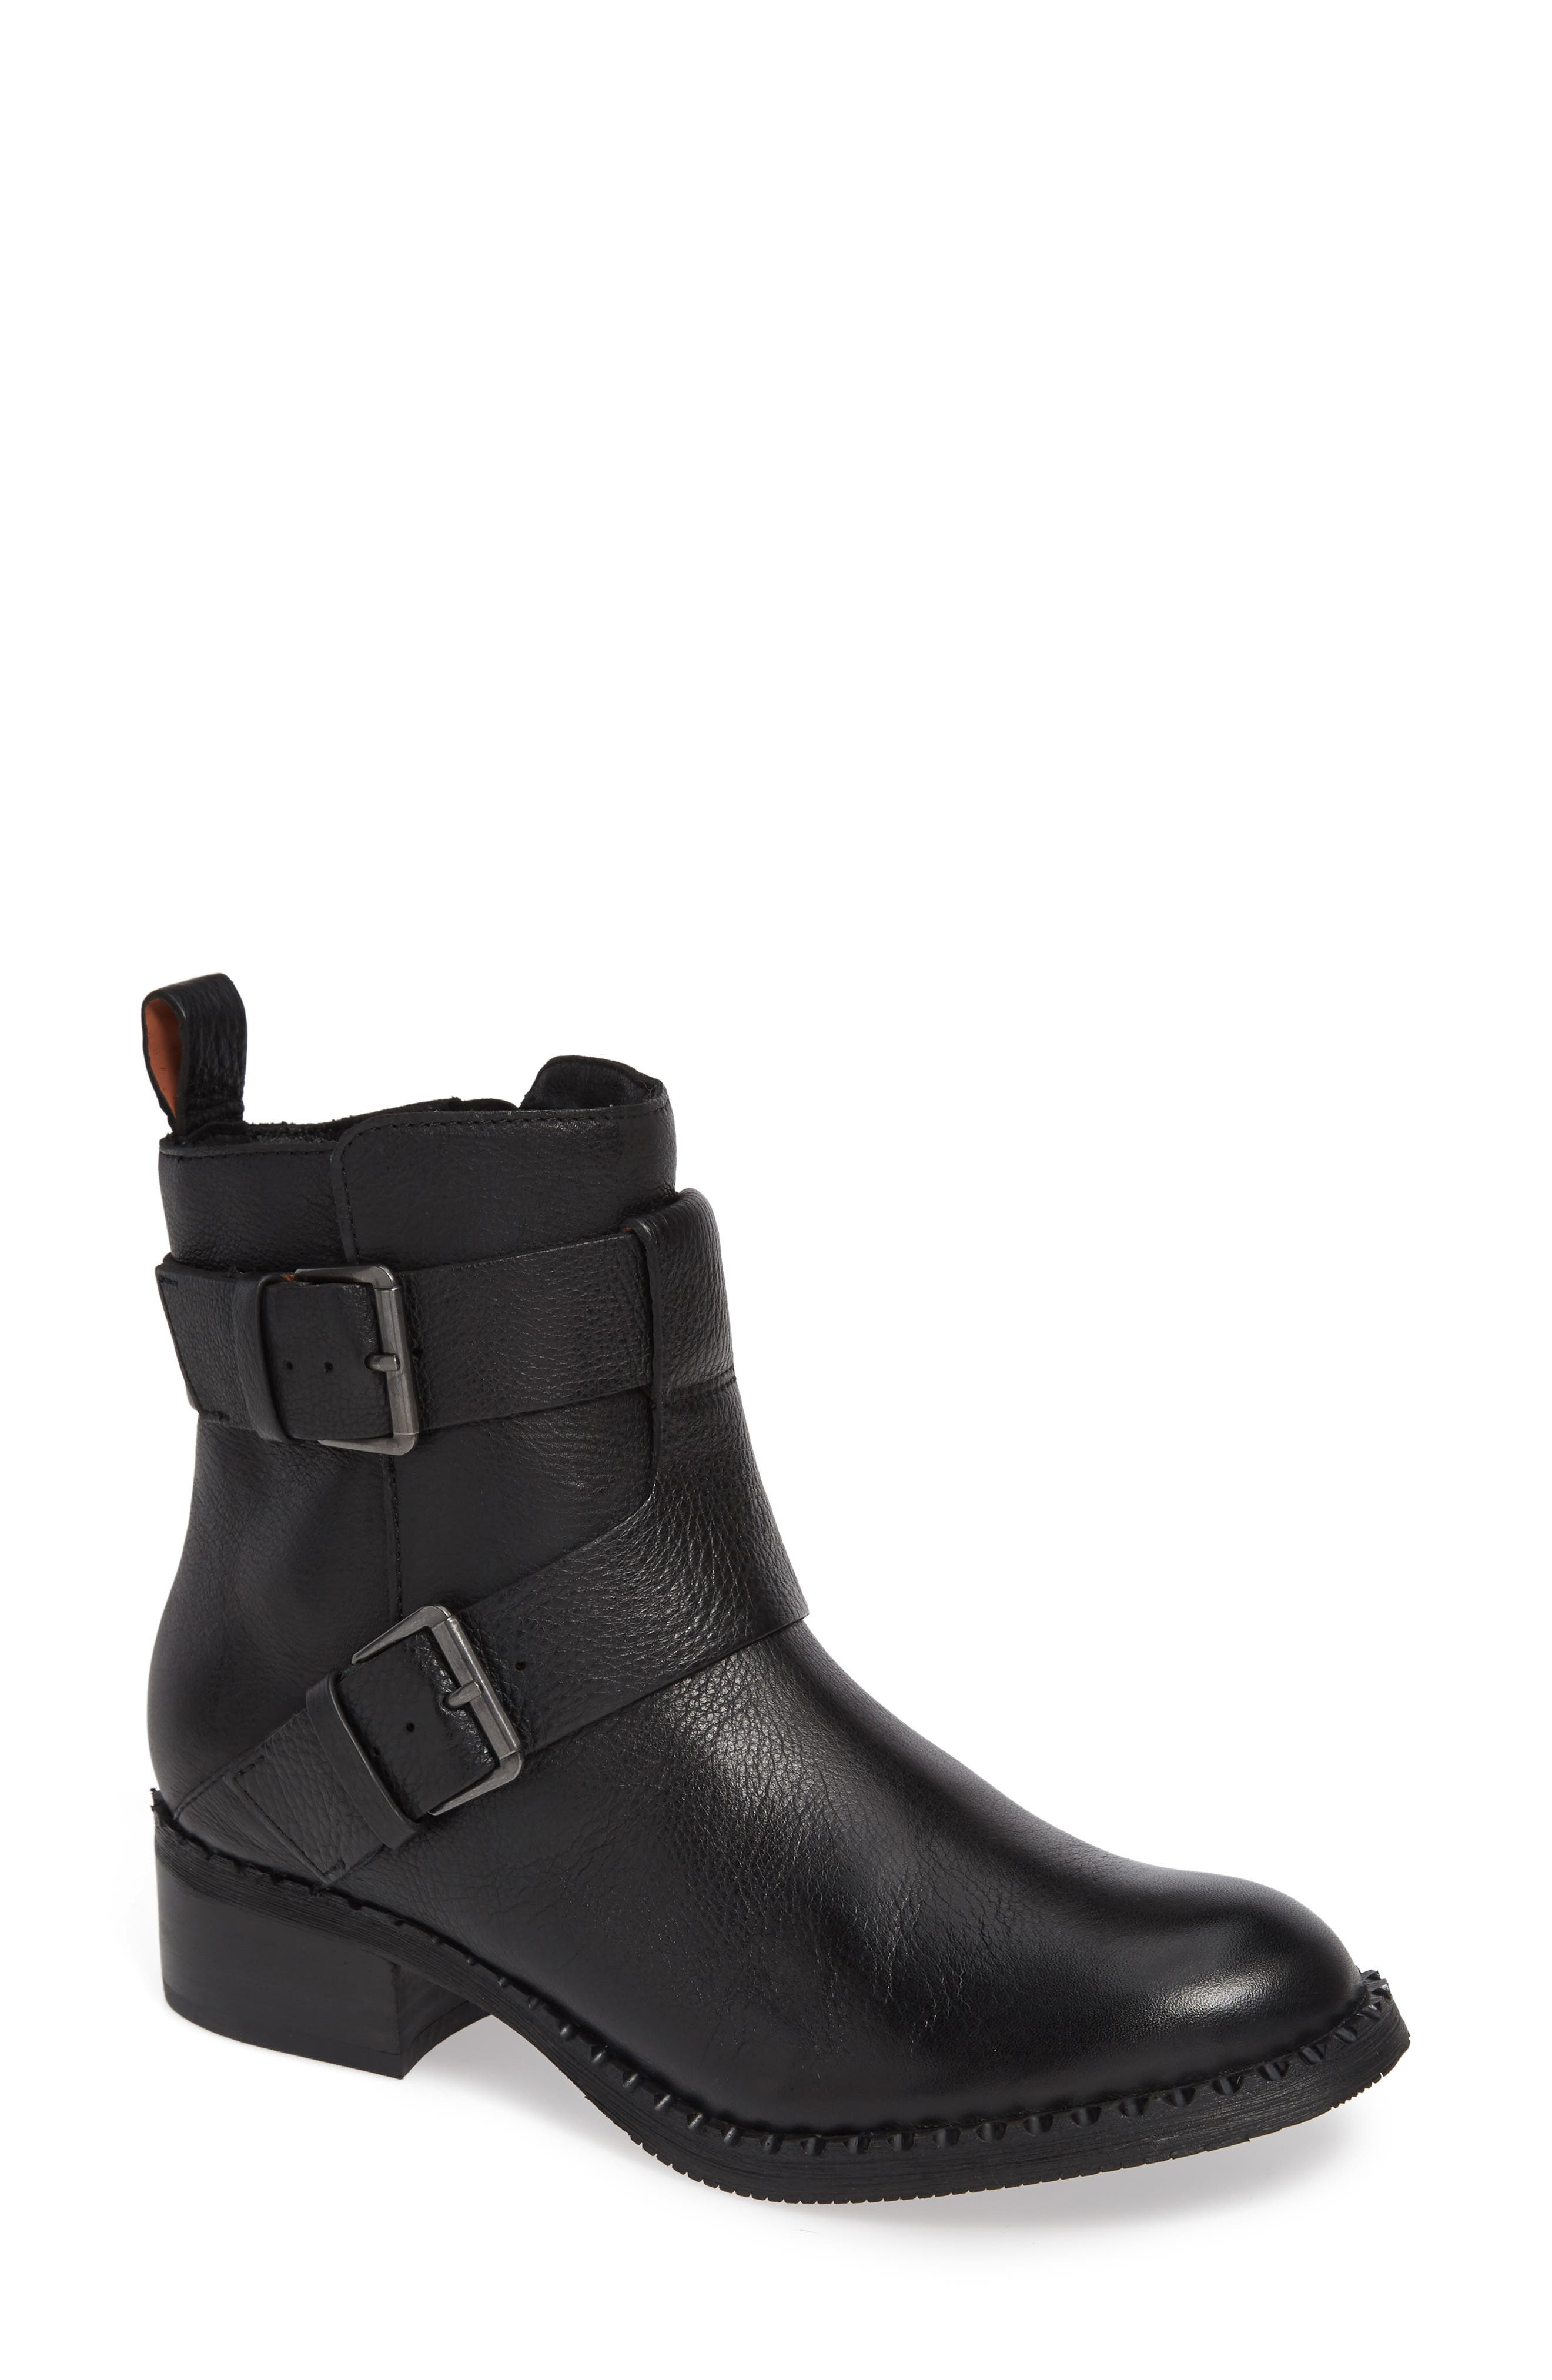 GENTLE SOULS BY KENNETH COLE Benton Moto Bootie, Main, color, BLACK LEATHER